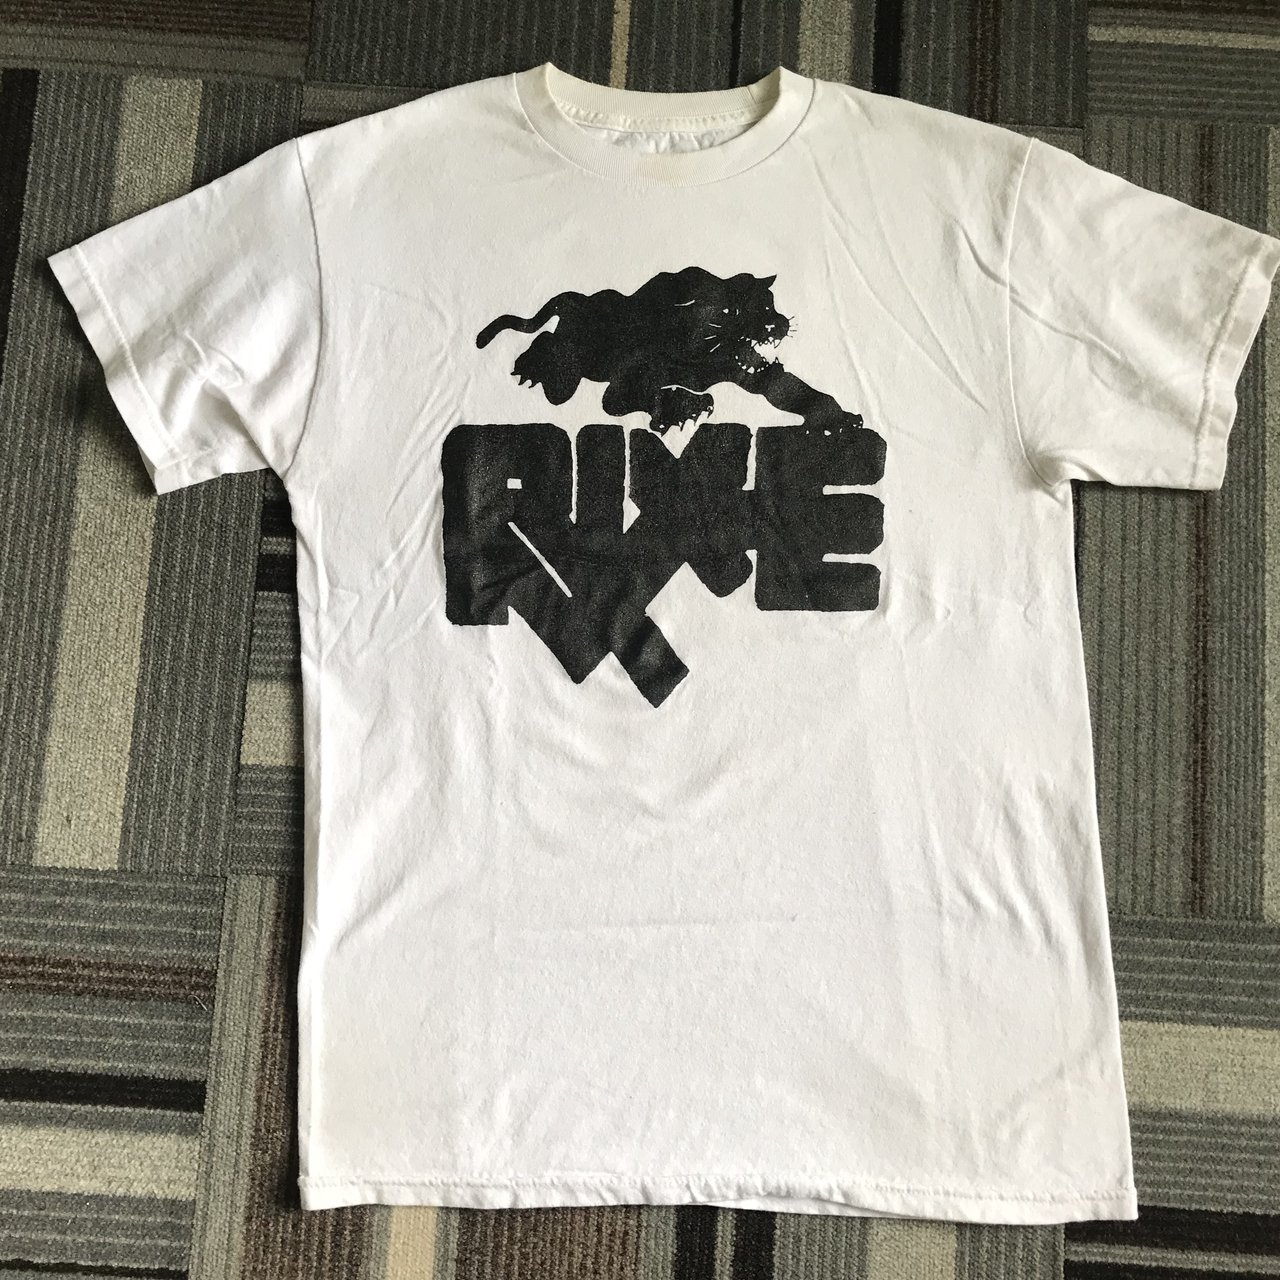 Rixe T Shirt Size Medium Tag Ripped Off For Comfort Sick Depop